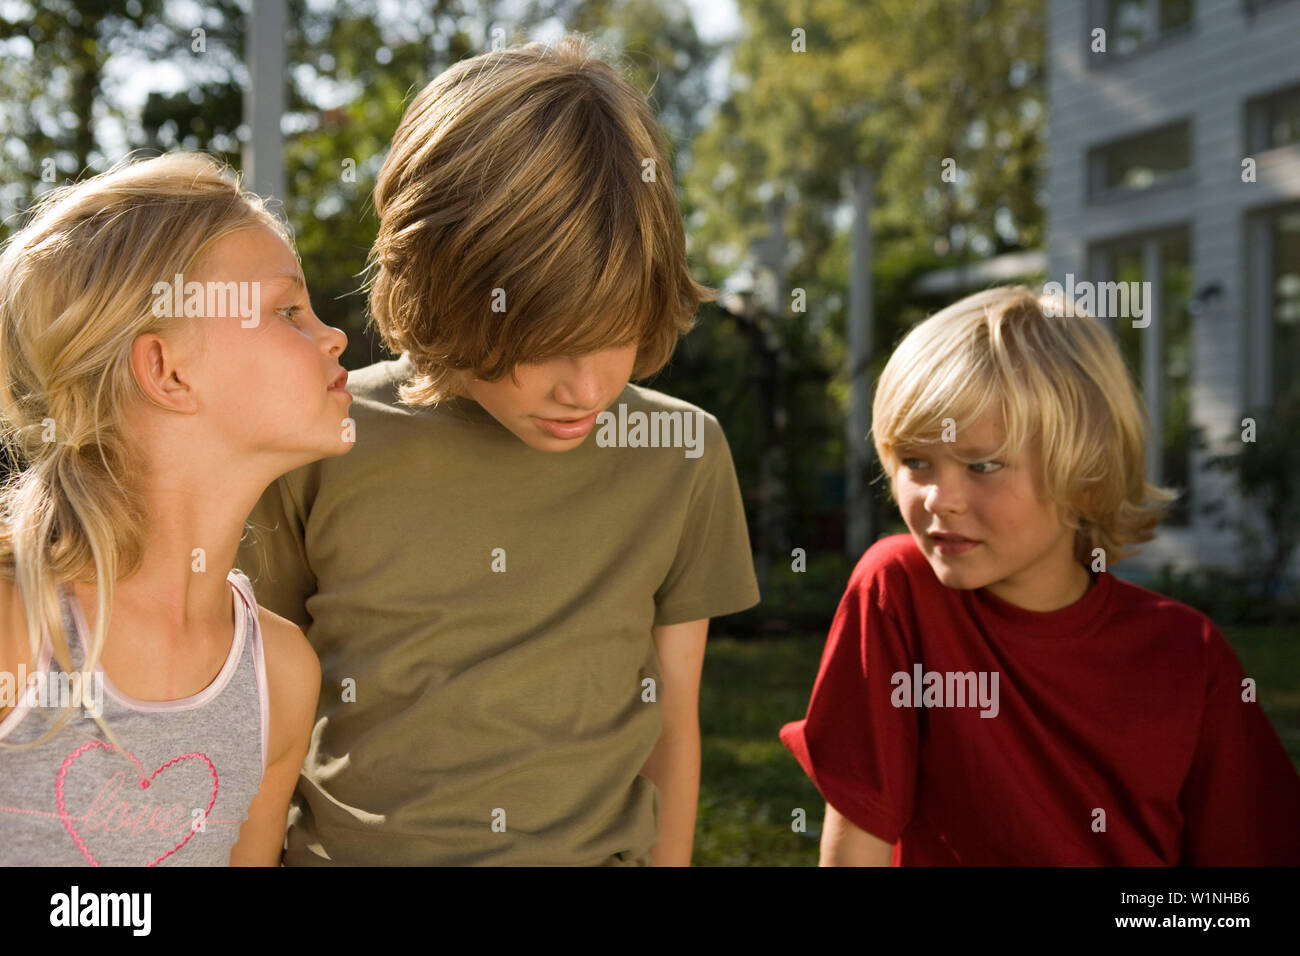 Children playing Chinese whisper, children's birthday party - Stock Image